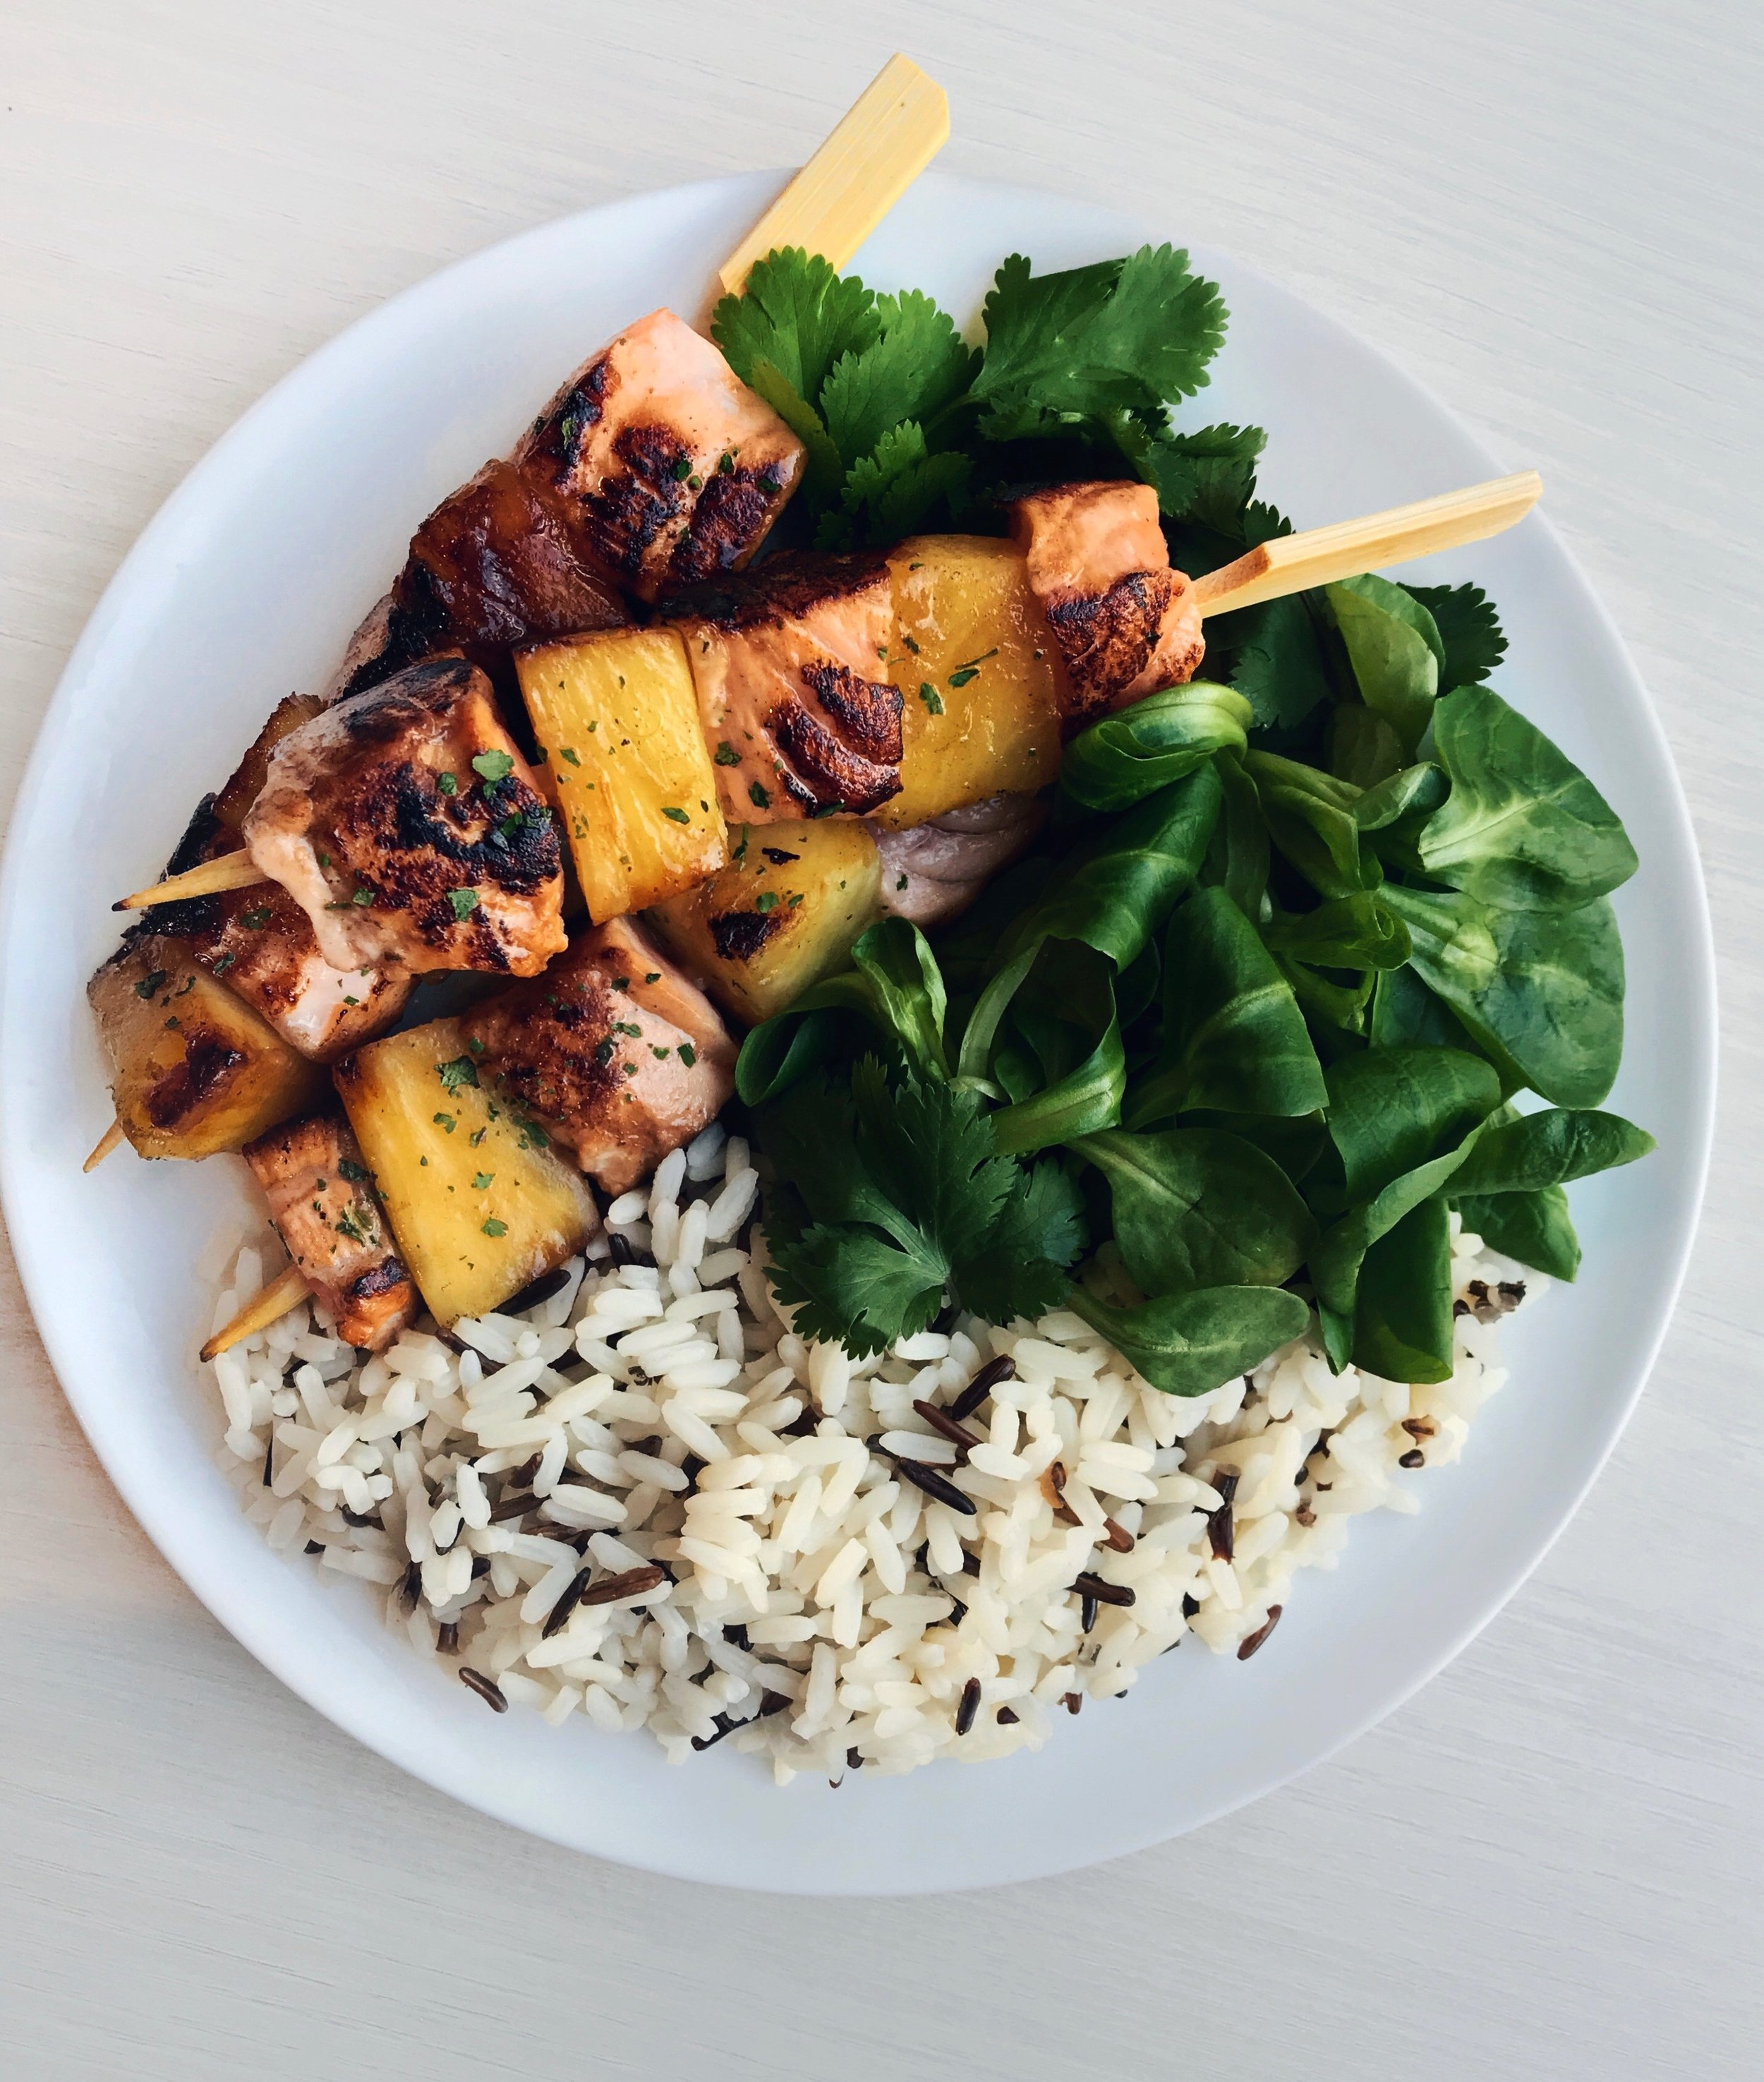 Grilled Salmon & Pineapple Skewers with Wild Rice - Cut the salmon and pineapple into cubes. Put on a skewer and then marinate for about 5min in soy sauce + honey. Grill in the pan on medium heat for just a few minutes on each side + double colored rice + cilantro + salad leaves